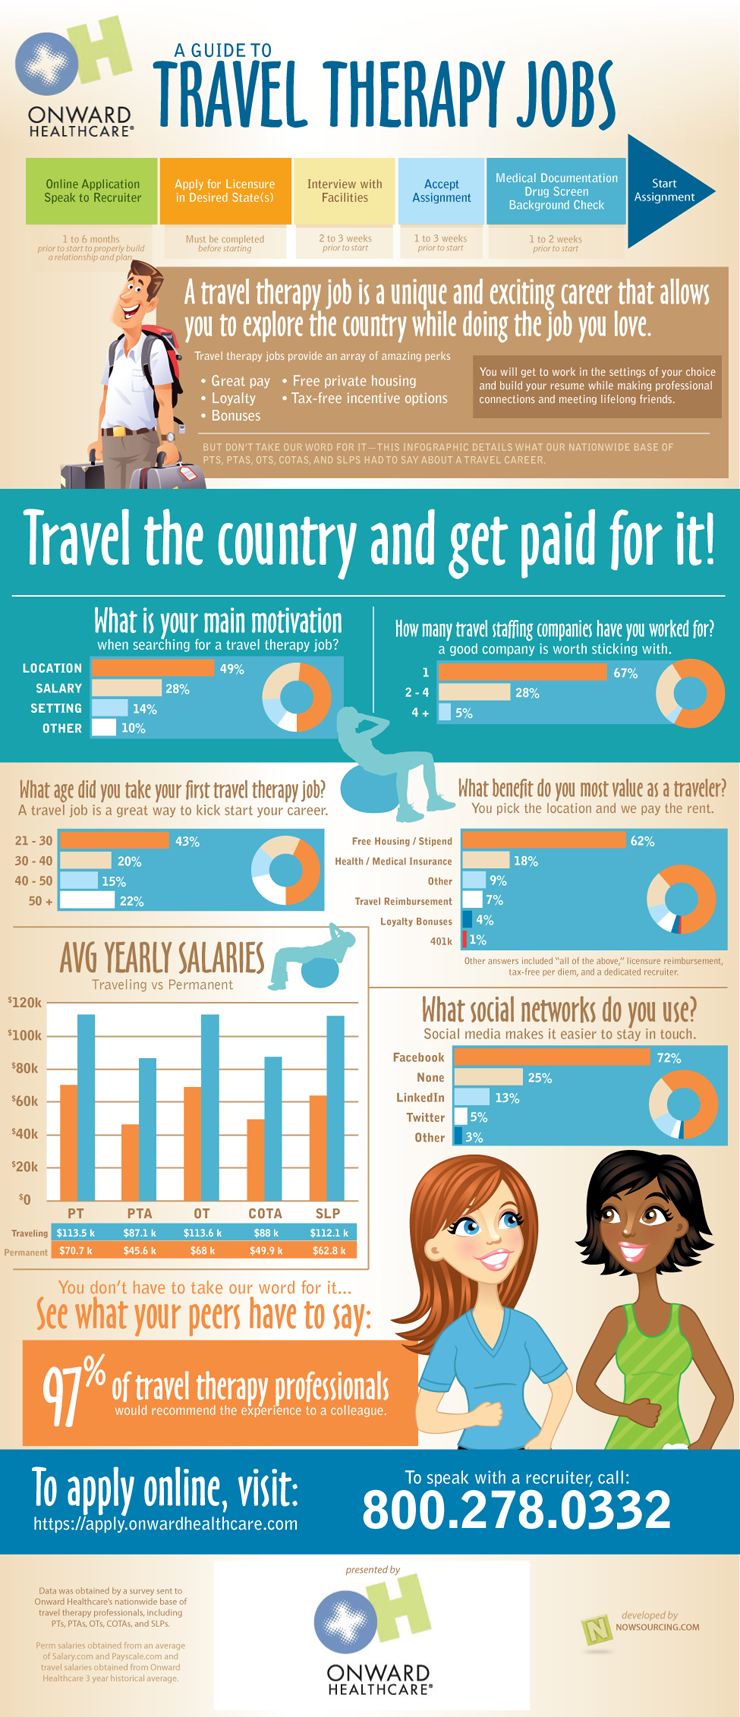 A Guide to Travel Therapy Jobs